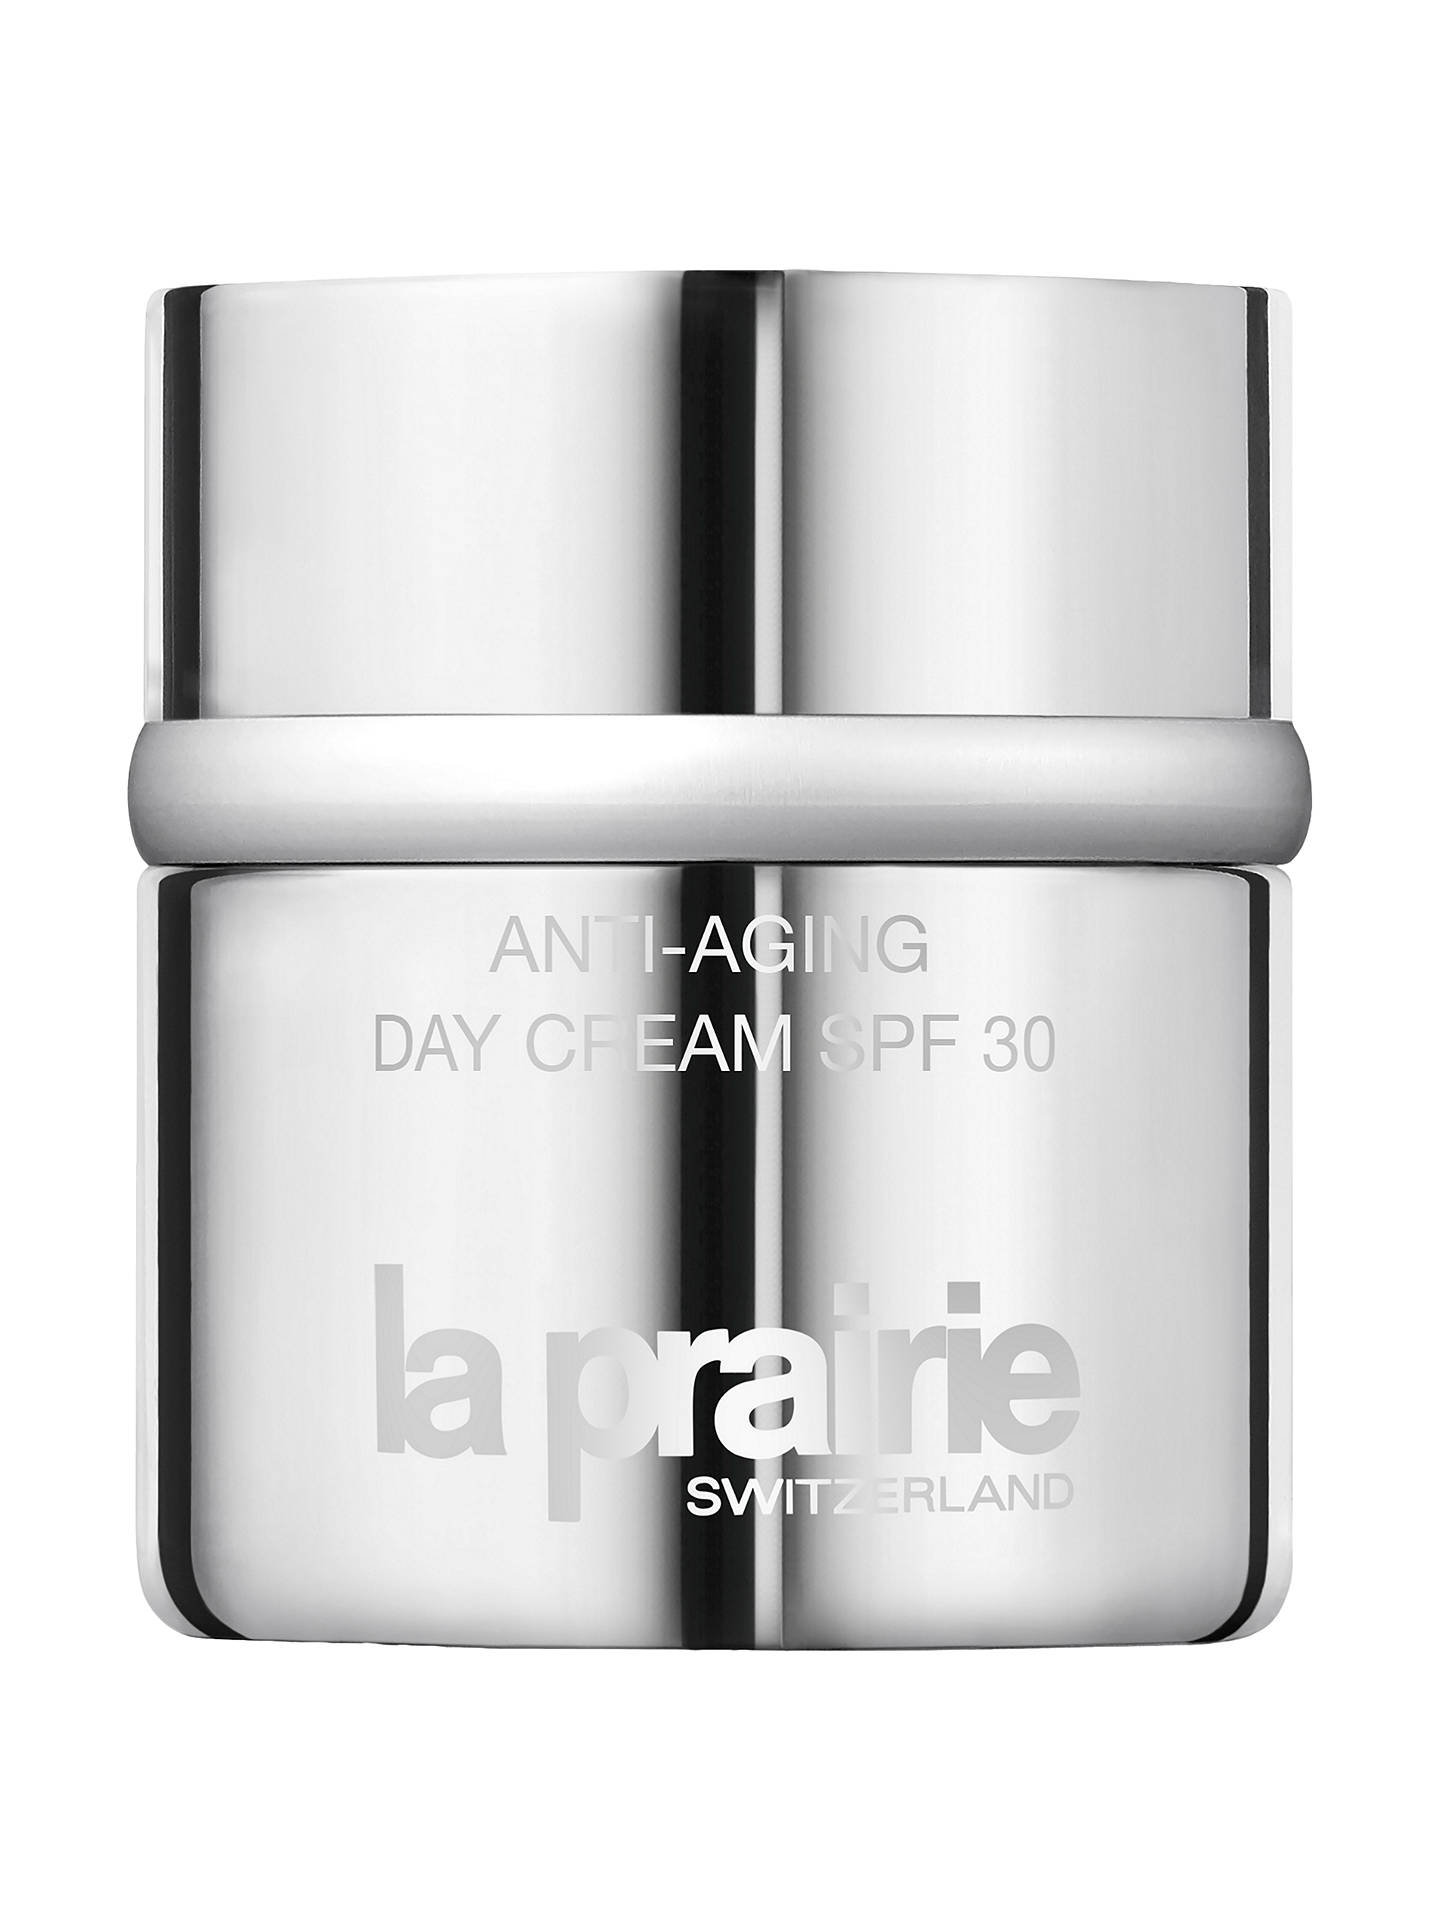 related product products/images/LaPrairie-AntiAgingDayCreamSPF30